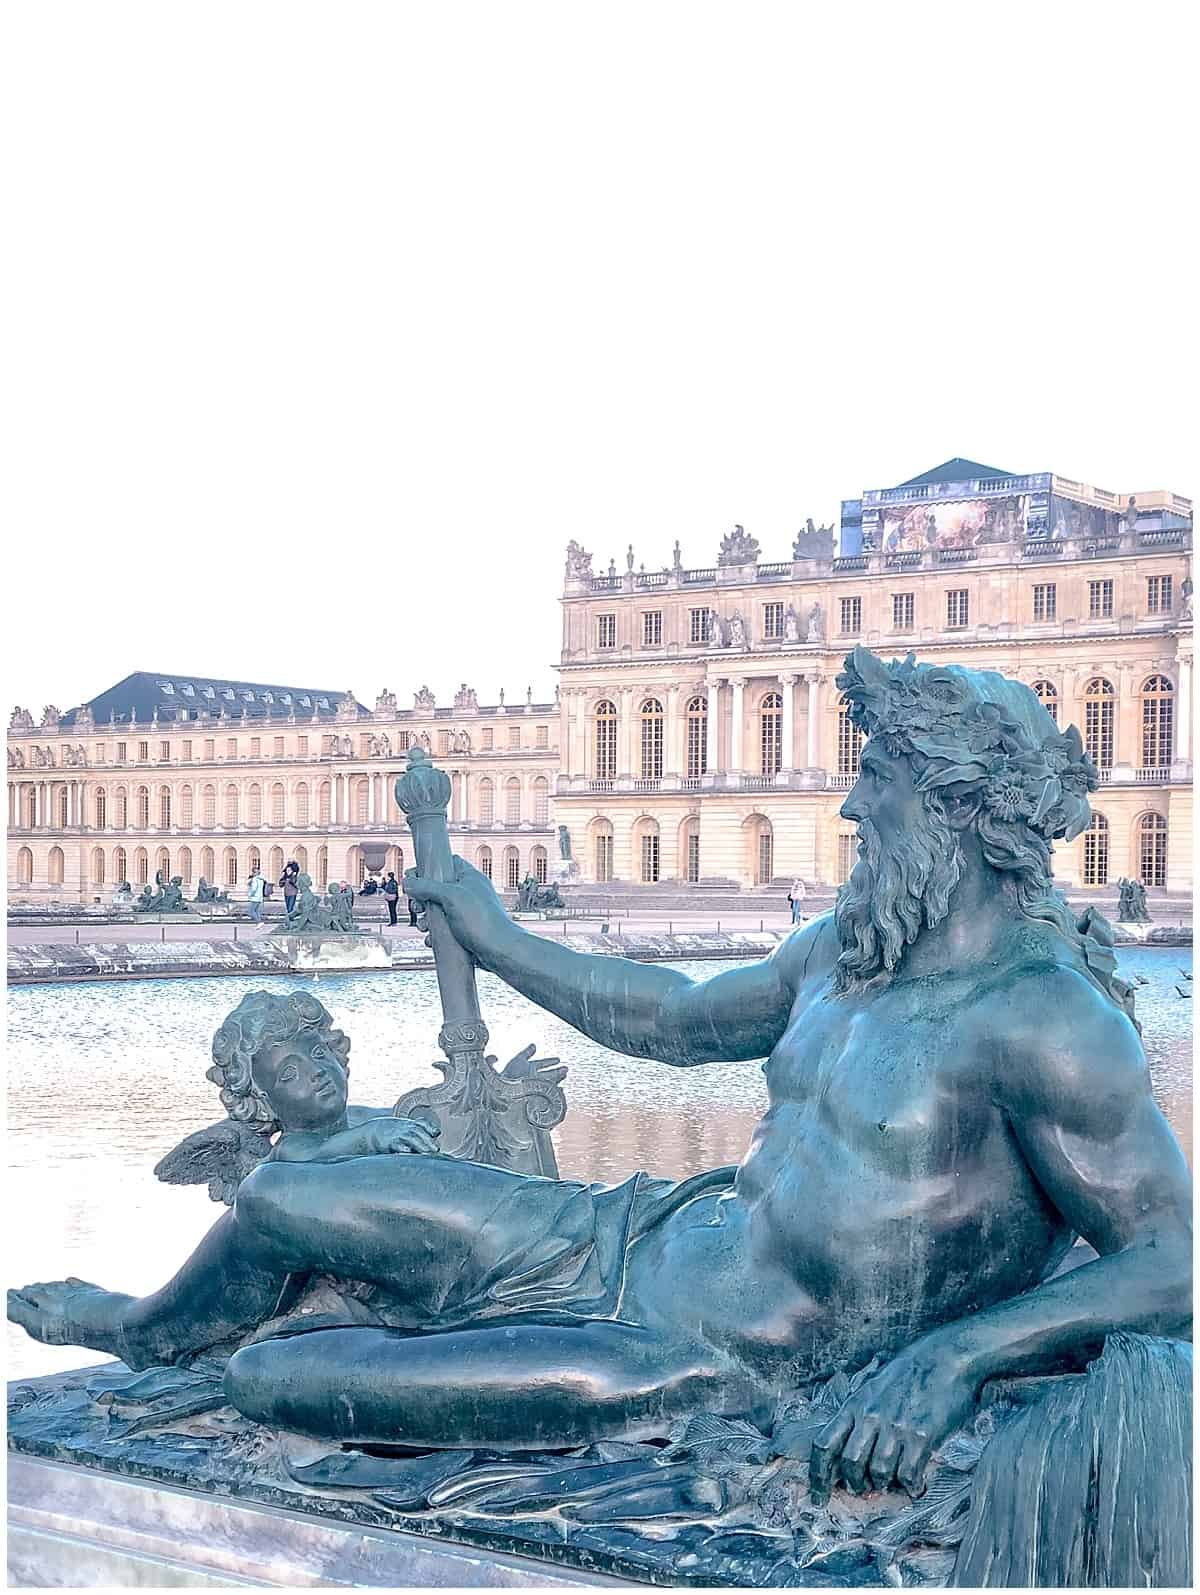 Versailles day trip from Paris - Neptune reclining in front of Palace of Versailles